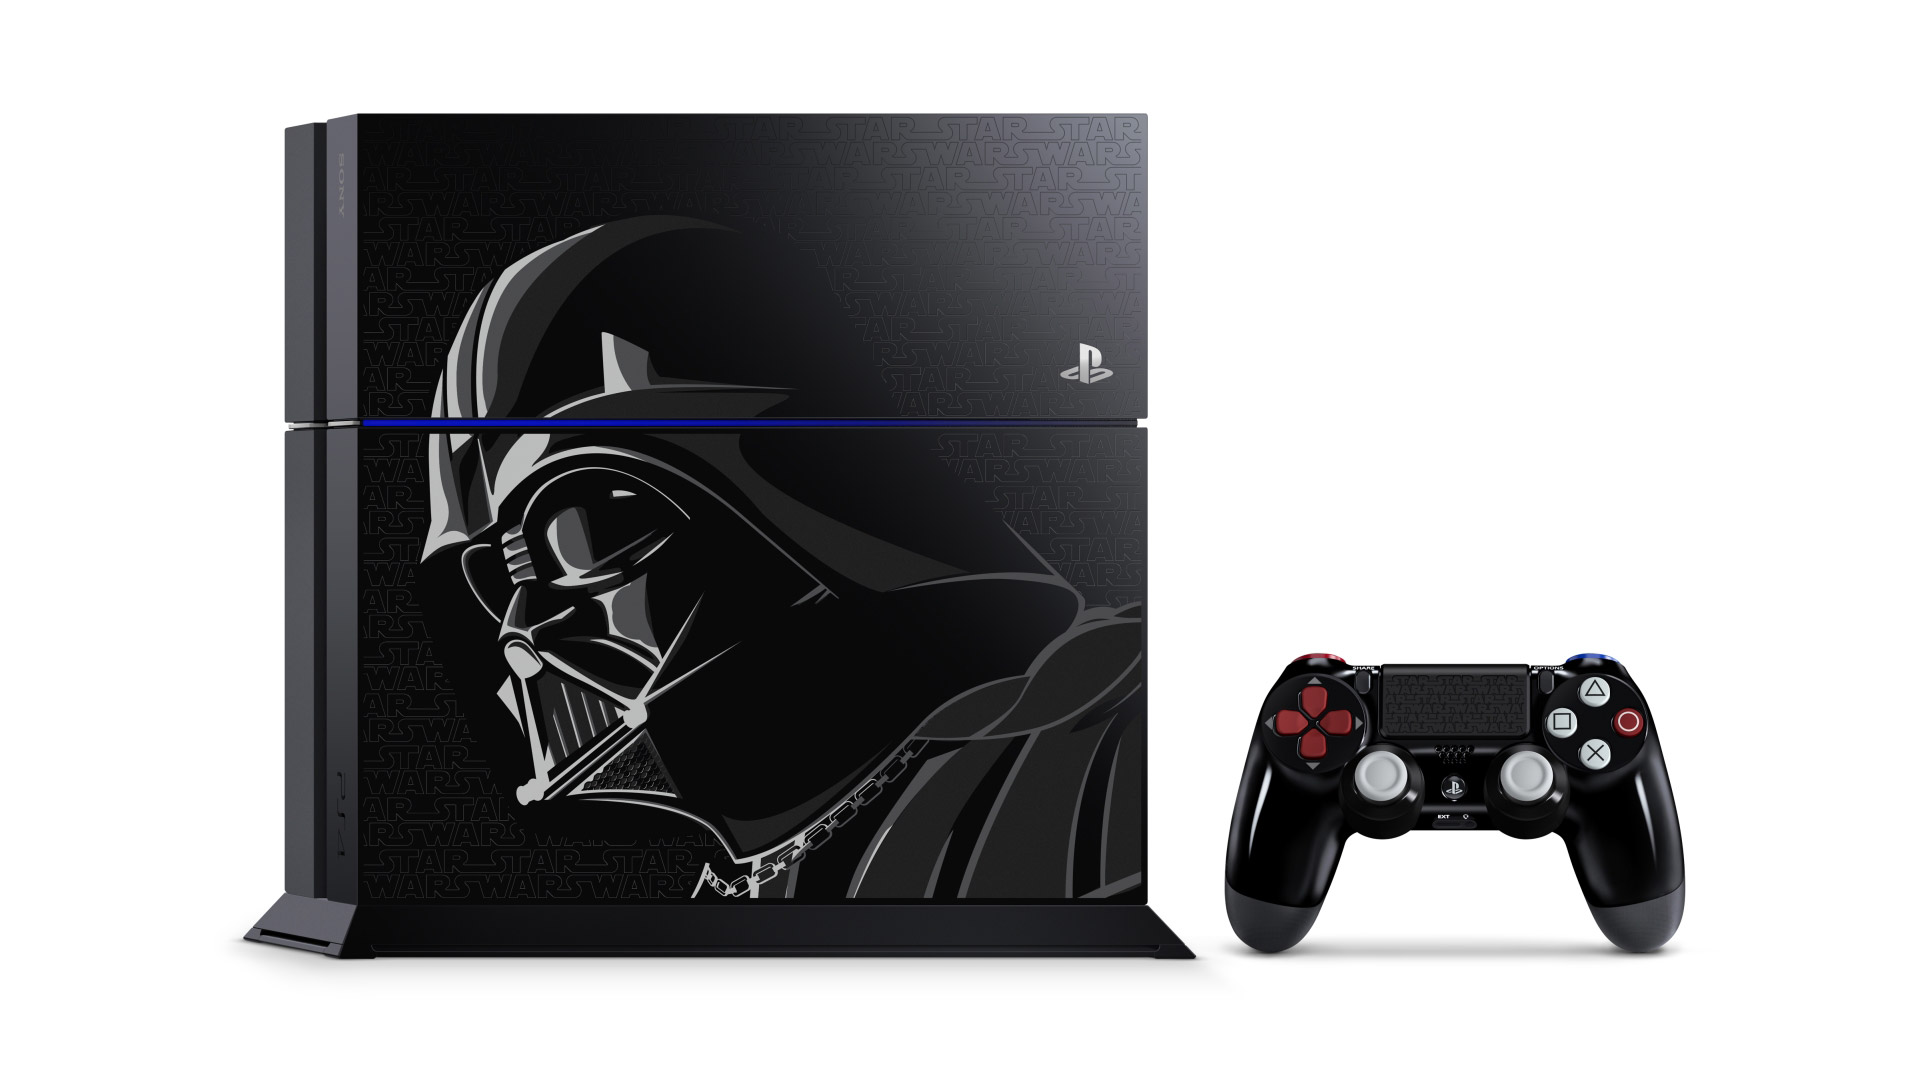 Darth Vader-inspired PS4 and DualShock 4 coming this year